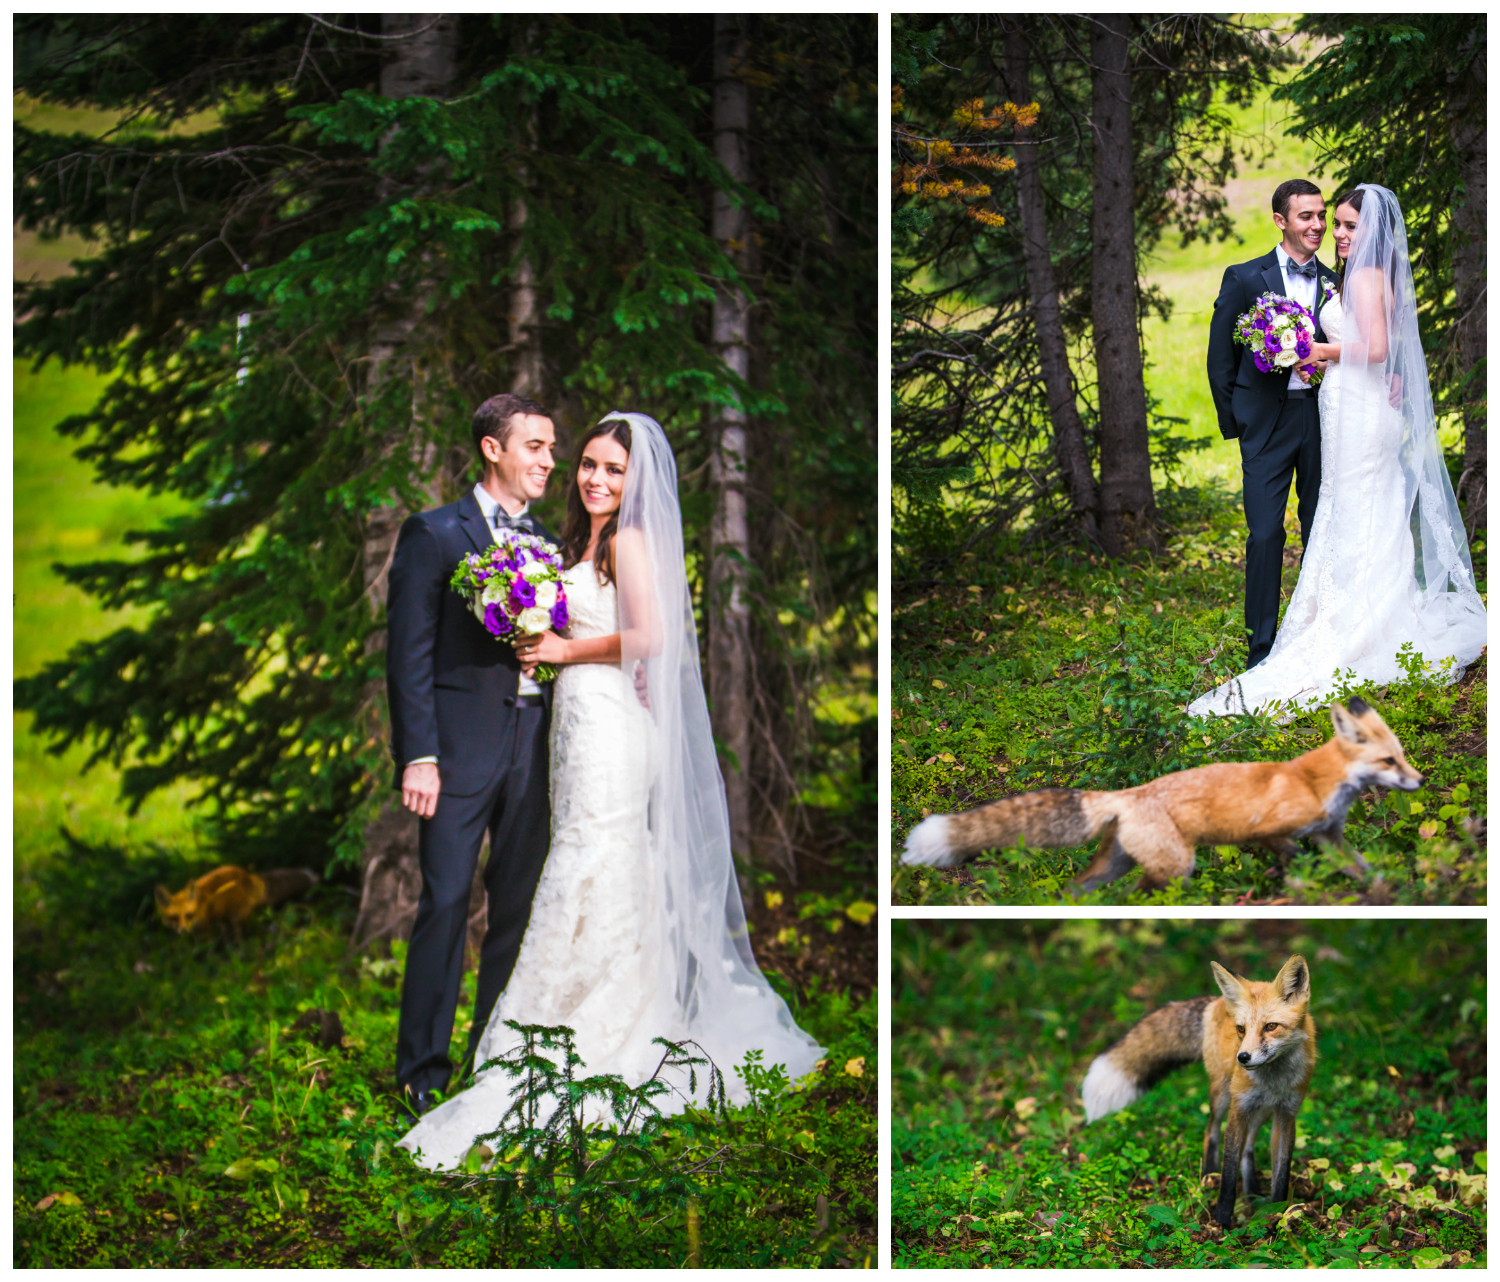 A fox ran through the wedding photos. Vail Colorado Wedding photographed by JMGant Photography.